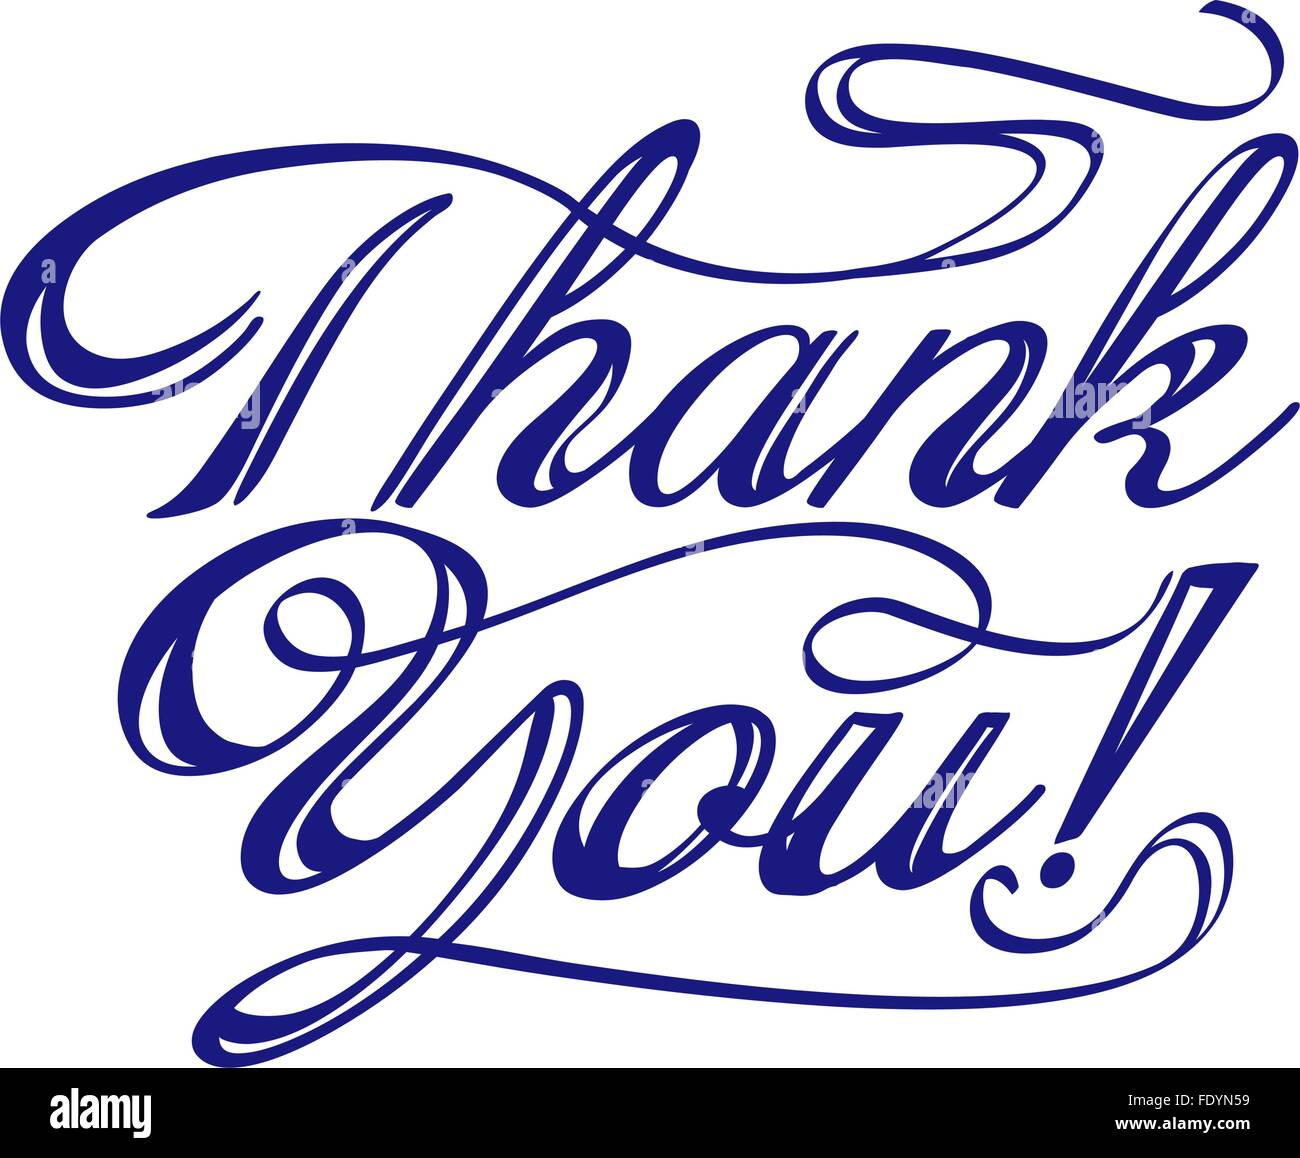 thank you words hand written with swirls. vector - Stock Image